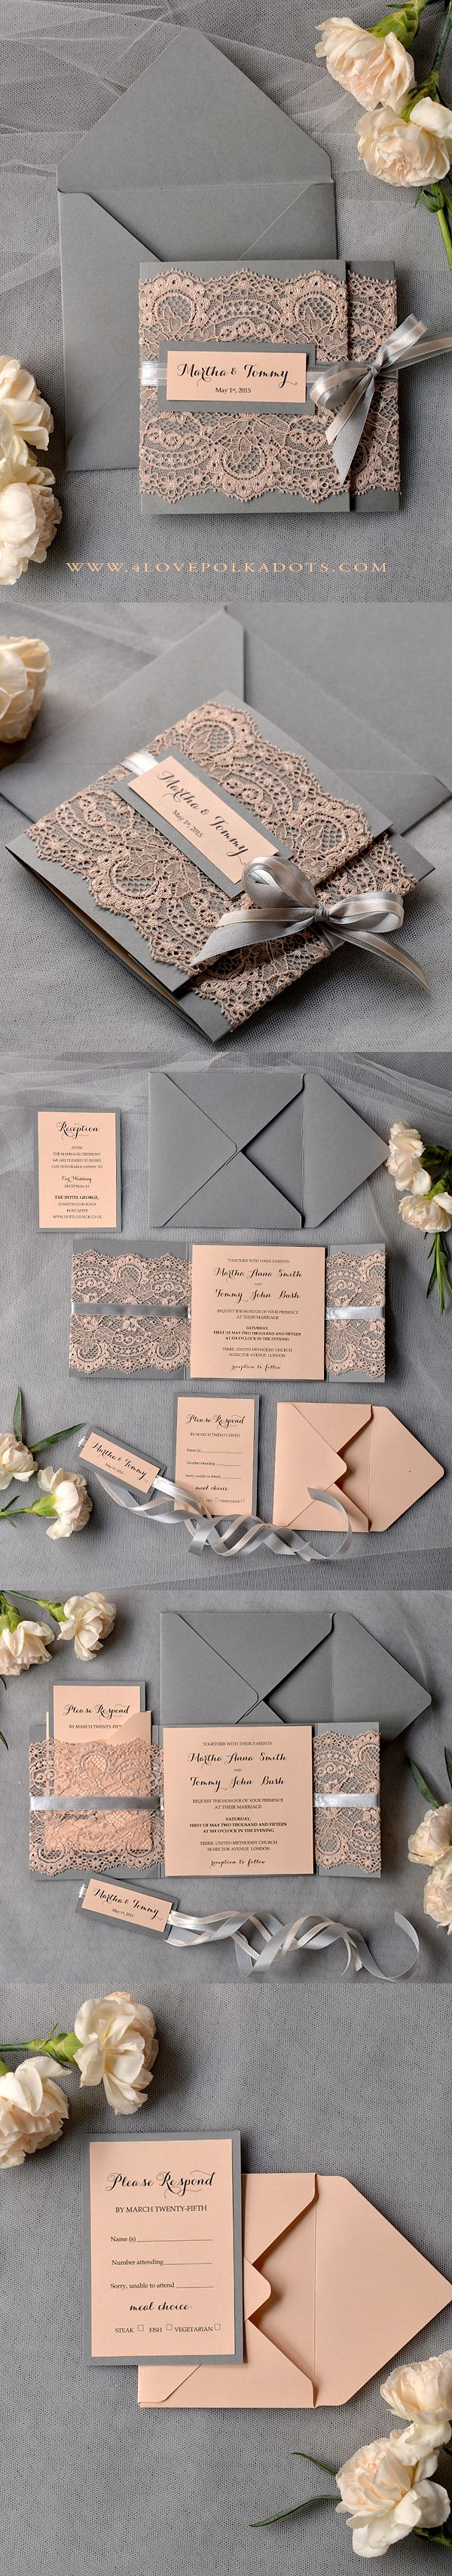 lace wedding invitation wrap%0A SAMPLE  Metallic Doilies Wedding Invitation Suite with Ribbon Bow    Invitation suite  Metallic and Jewel